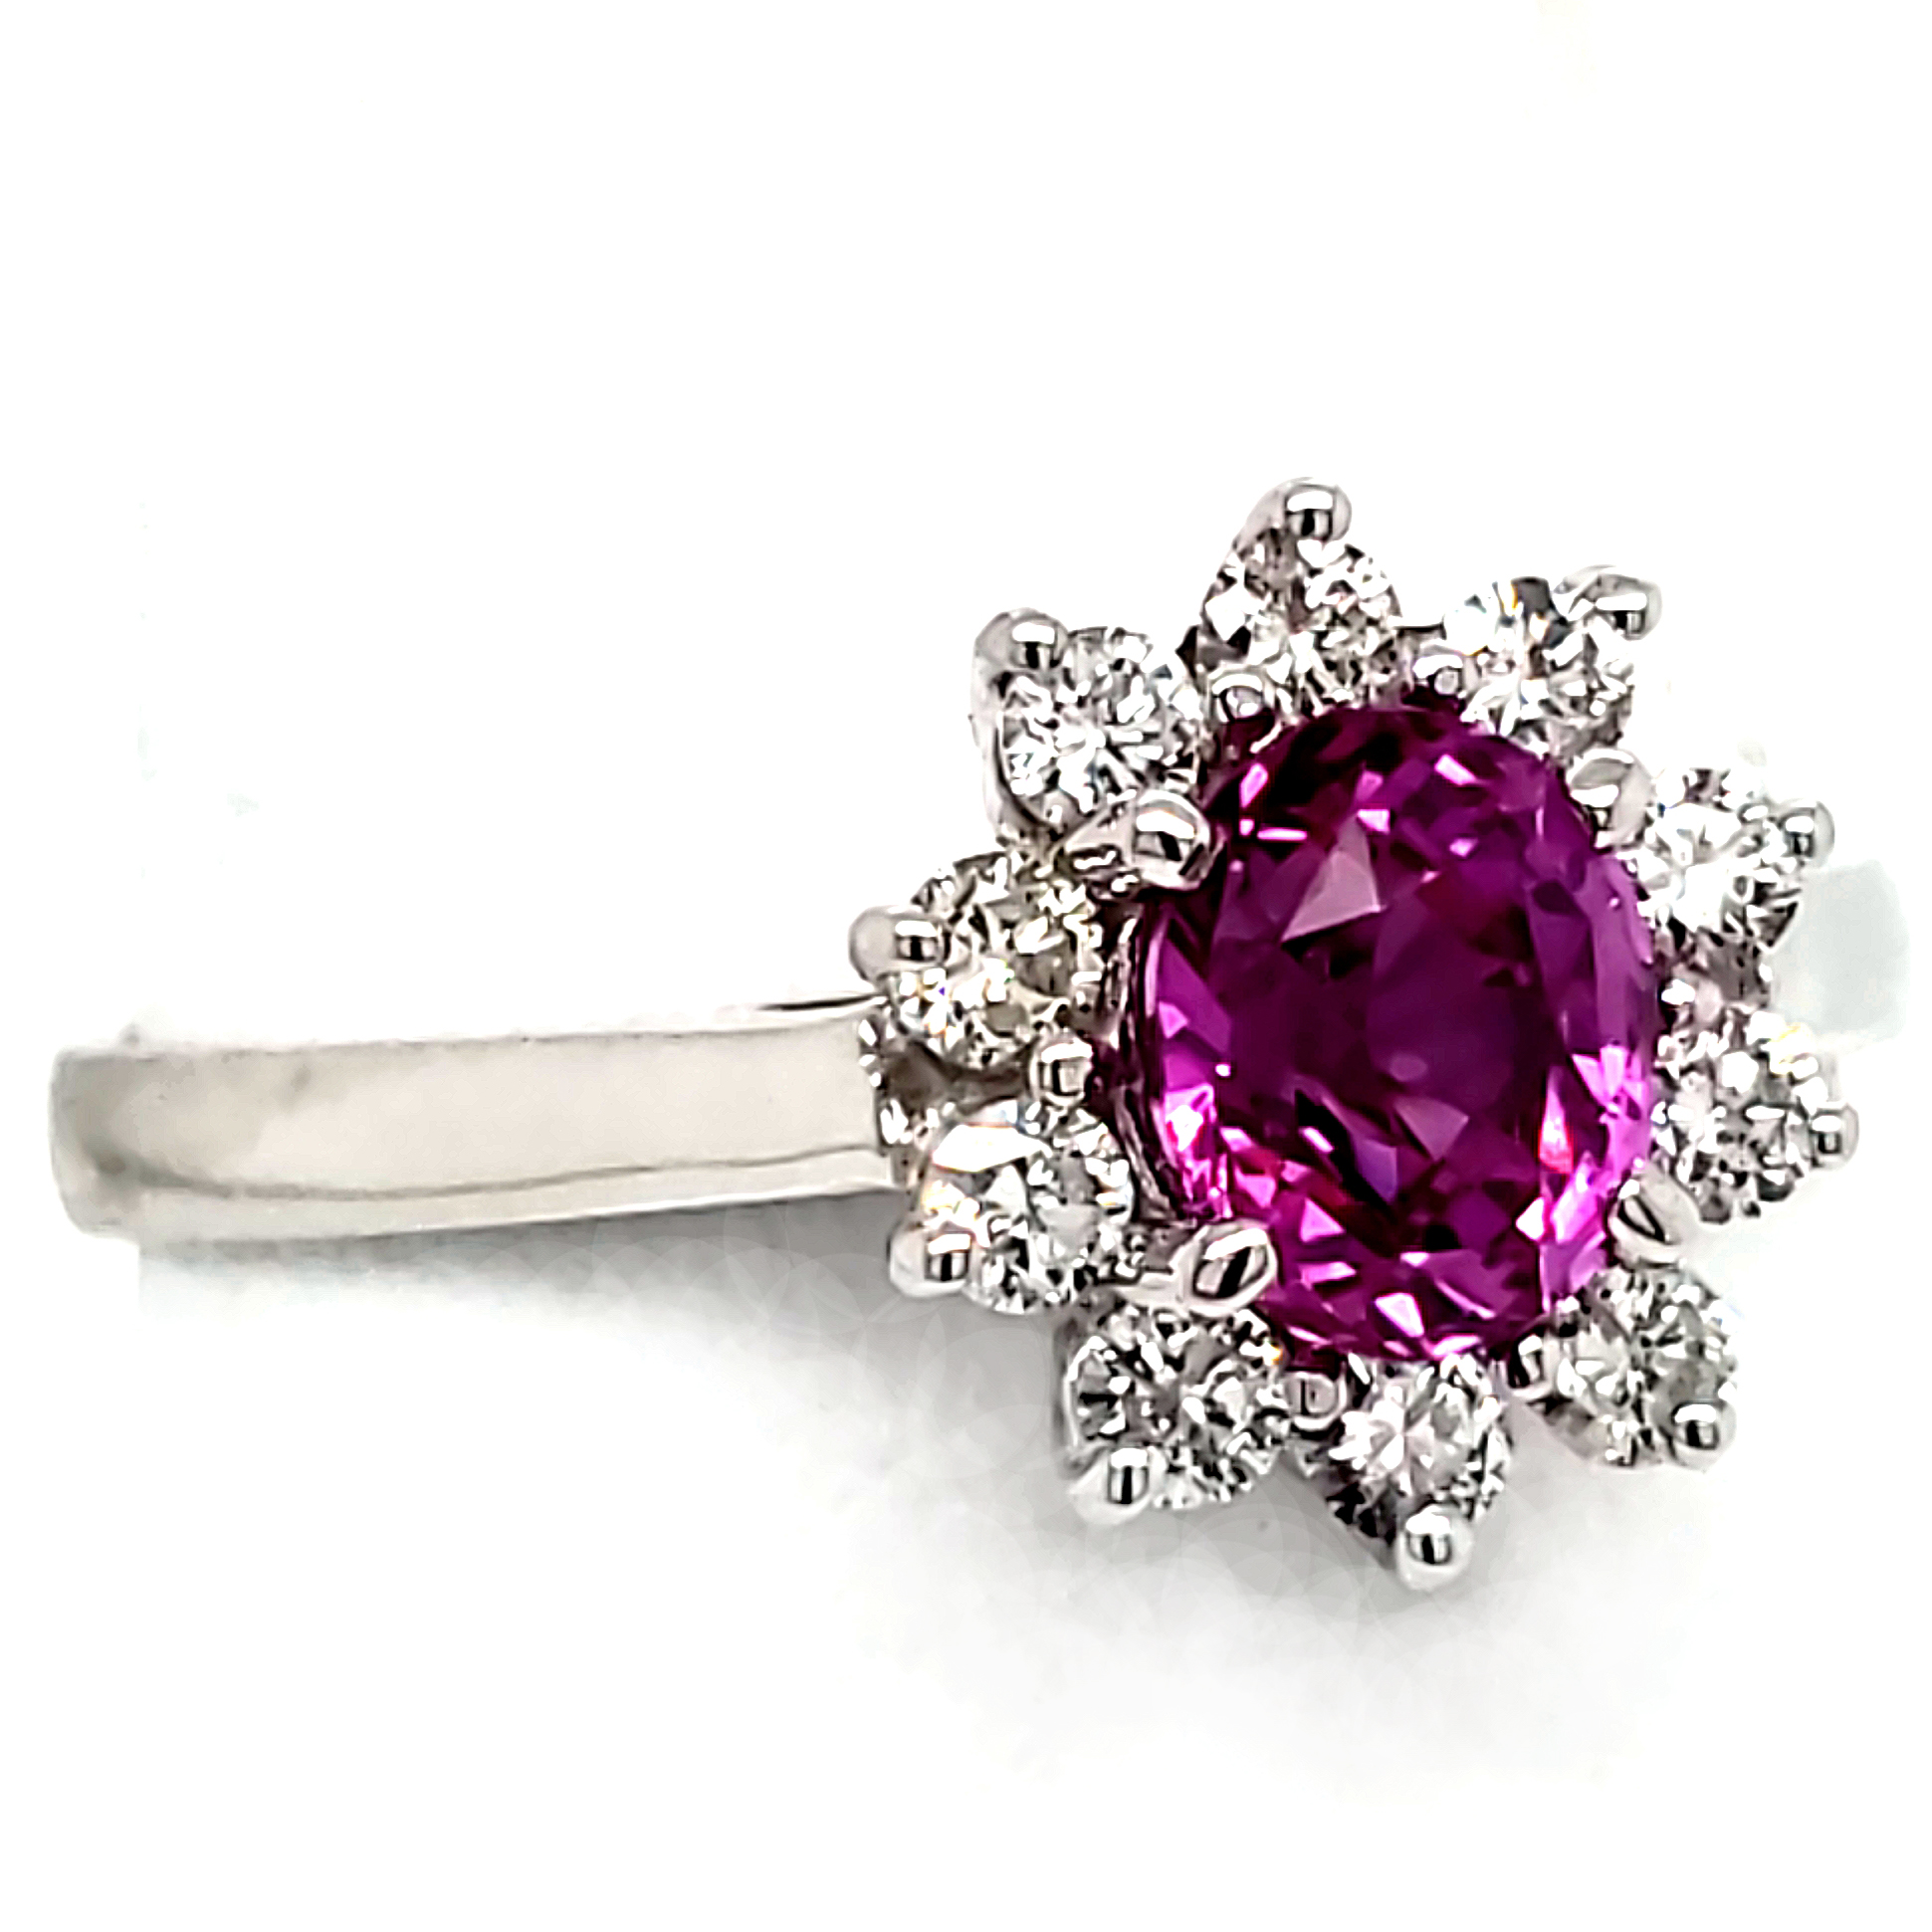 .96 ct. Magenta Sapphire and Diamond 14k white gold ring left side